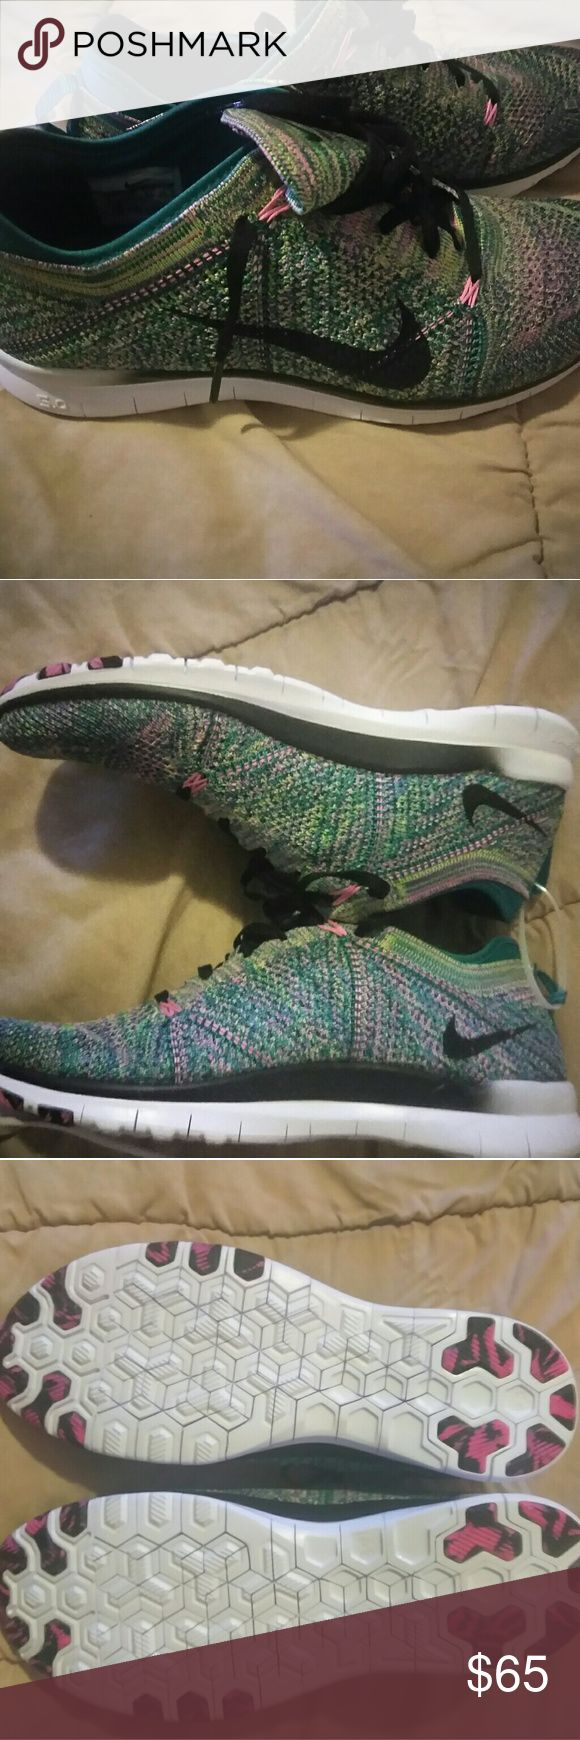 Nike Flyknit Free Run 5.0 Pink Green Glacier Racer Nike Flyknit Free run 5.0 TR Pink lagoon/ glacier Pink/ green women's Sz 9.5 brand new? Nike Shoes Athletic Shoes